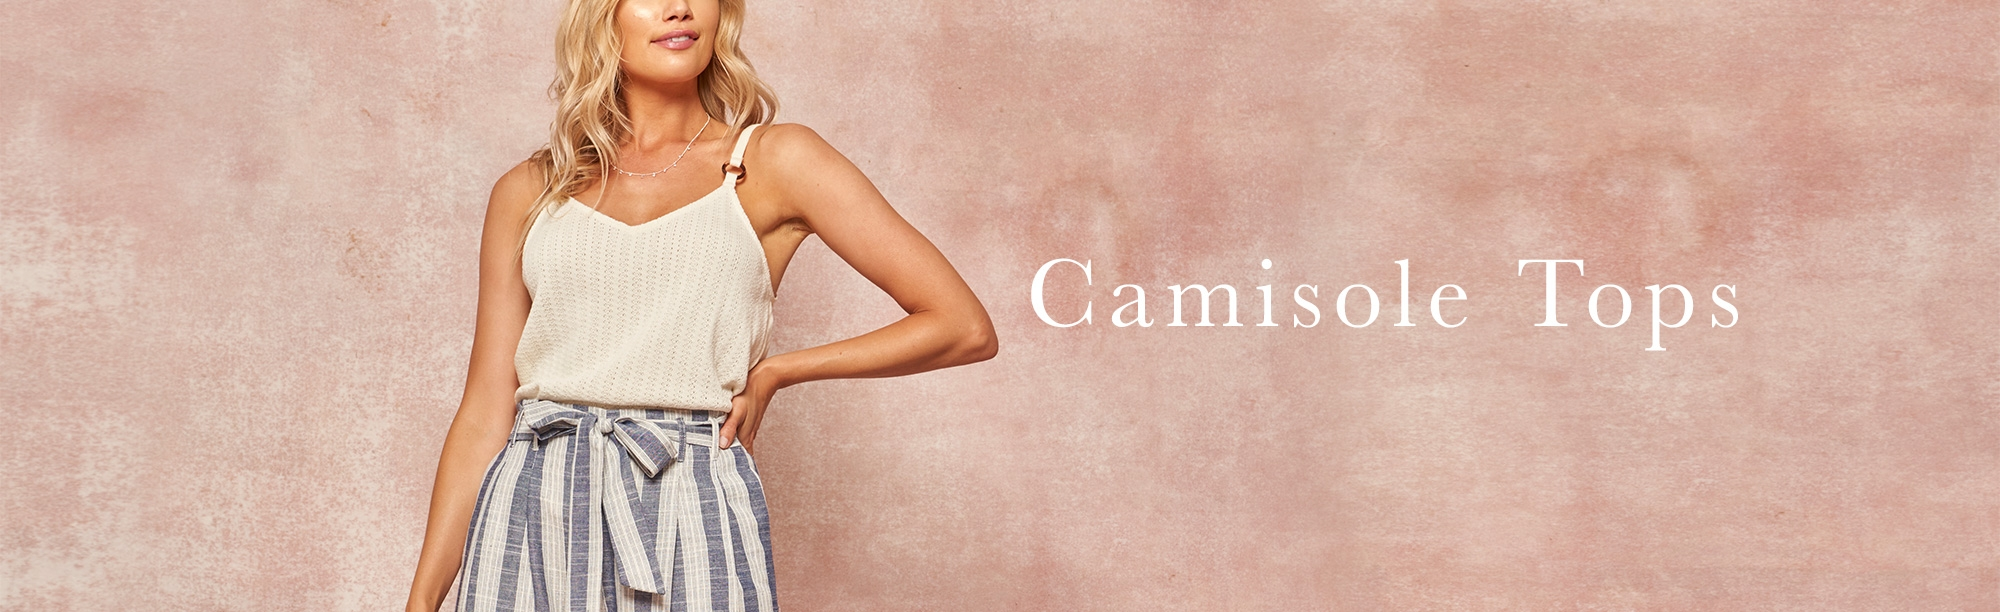 Camisole Tops